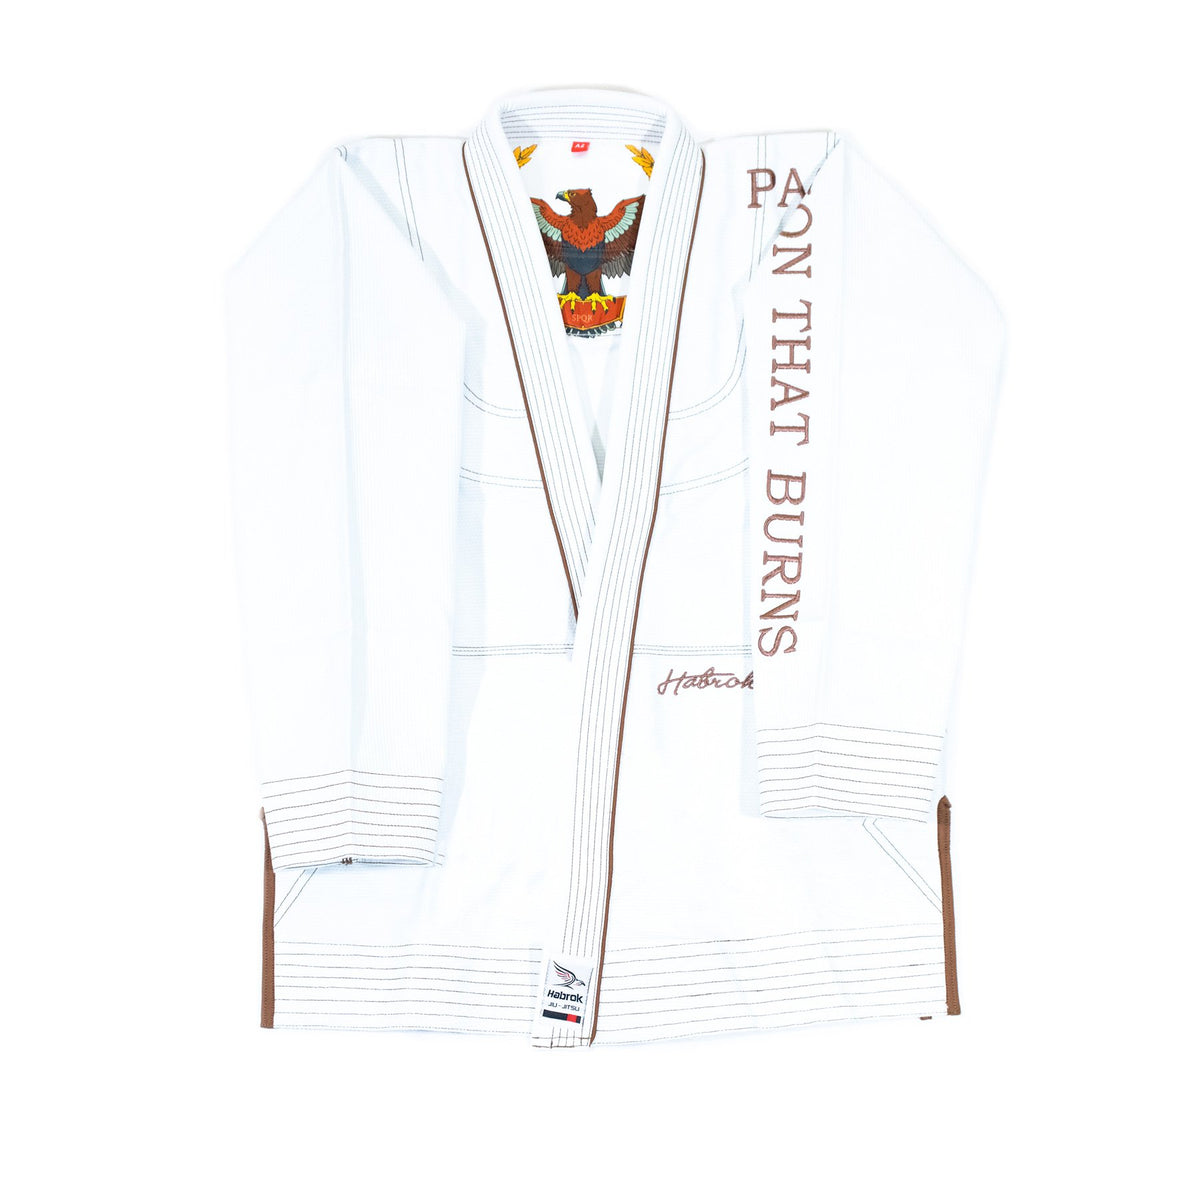 Habrok Jiu Jitsu Gi K00 / WHITE Passion 2.0 | Pro Comp | Signature GI | Youth | White